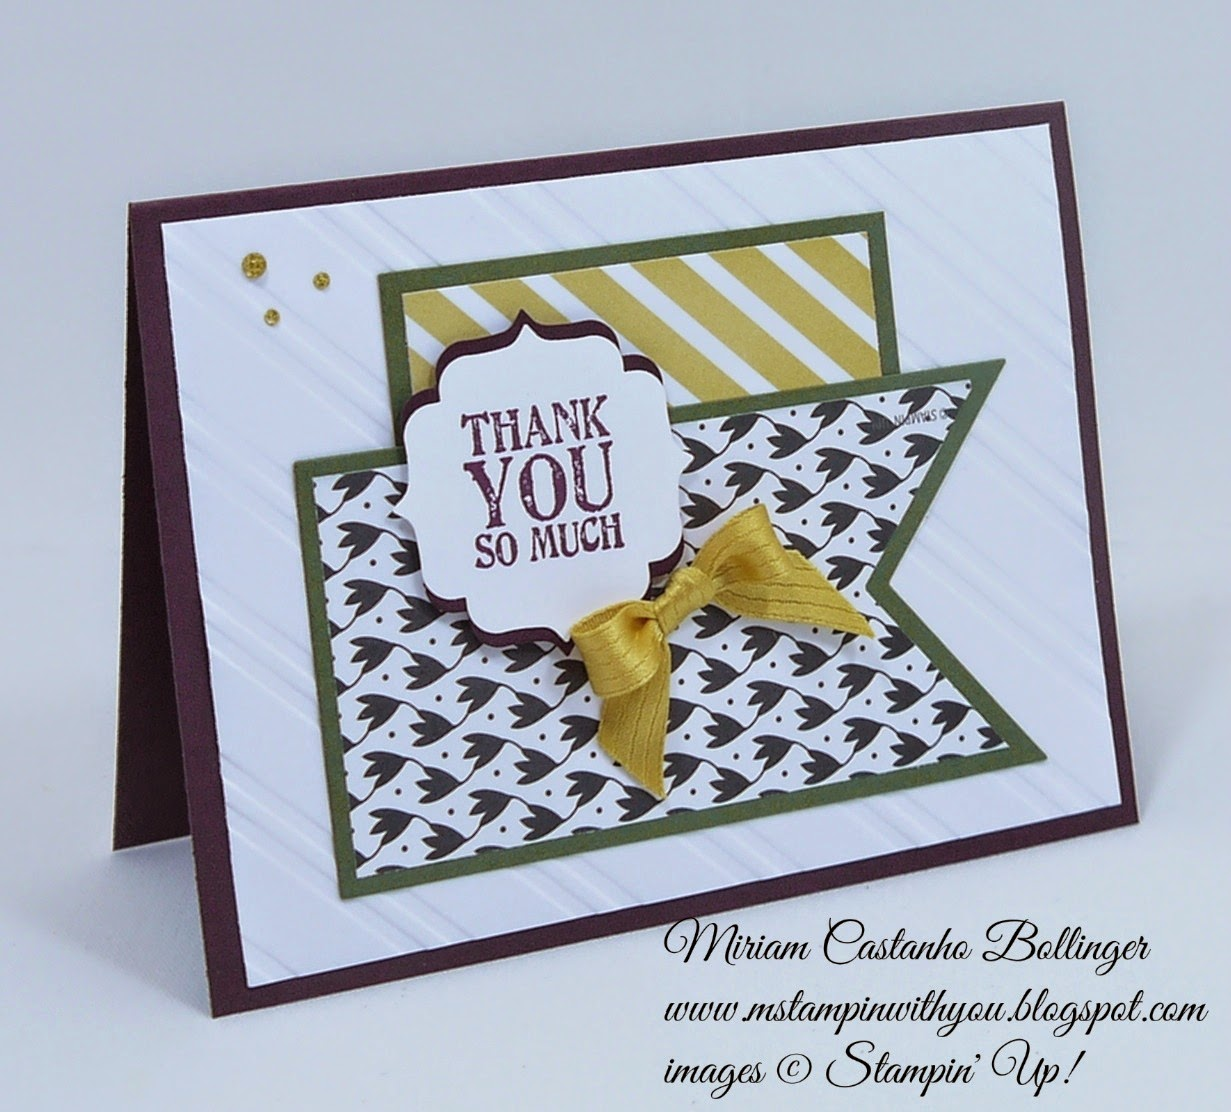 Miriam Castanho Bollinger, mstampinwithyou, stampin up, demonstrator, fms 160, lullaby dsp, back to black dsp, lots of thanks, label bracket punch, big shot, stylish stripes, banner framelit, su